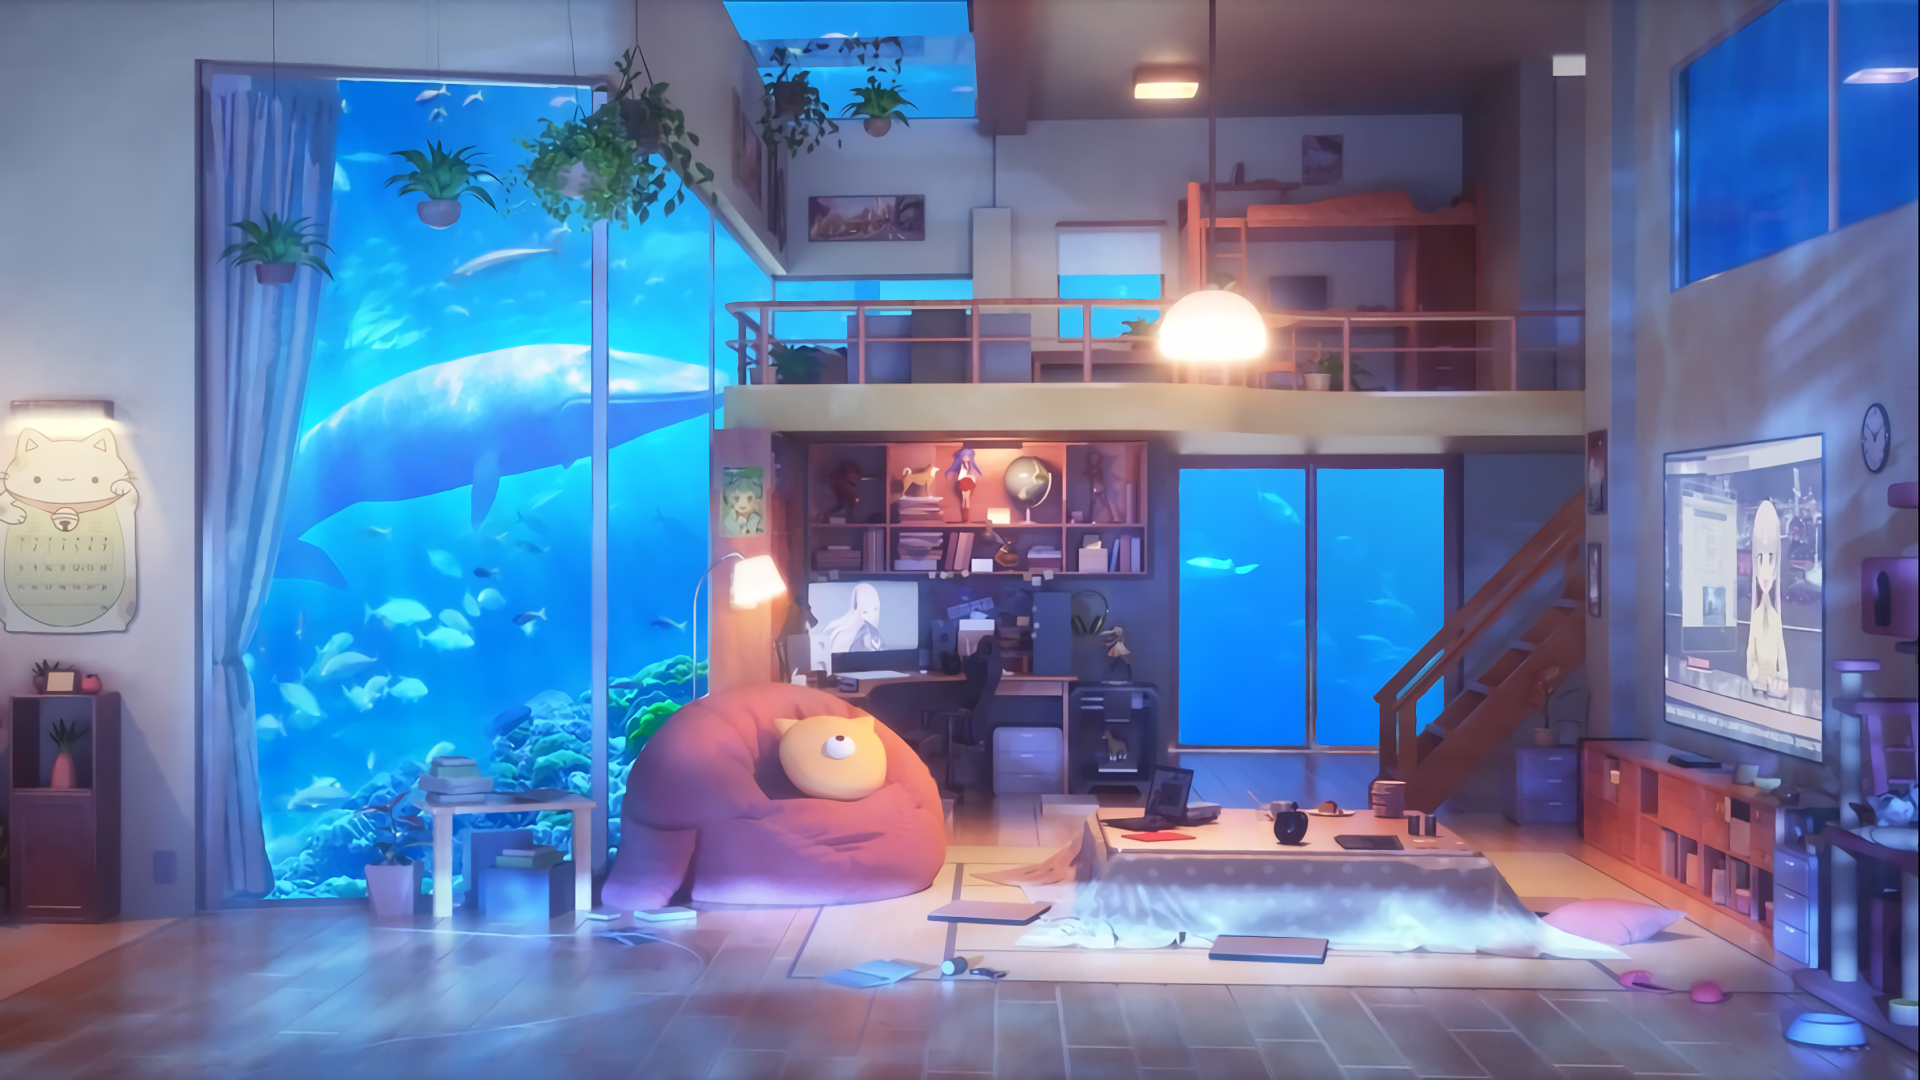 Anime Room Wallpapers   Top Anime Room Backgrounds 1920x1080